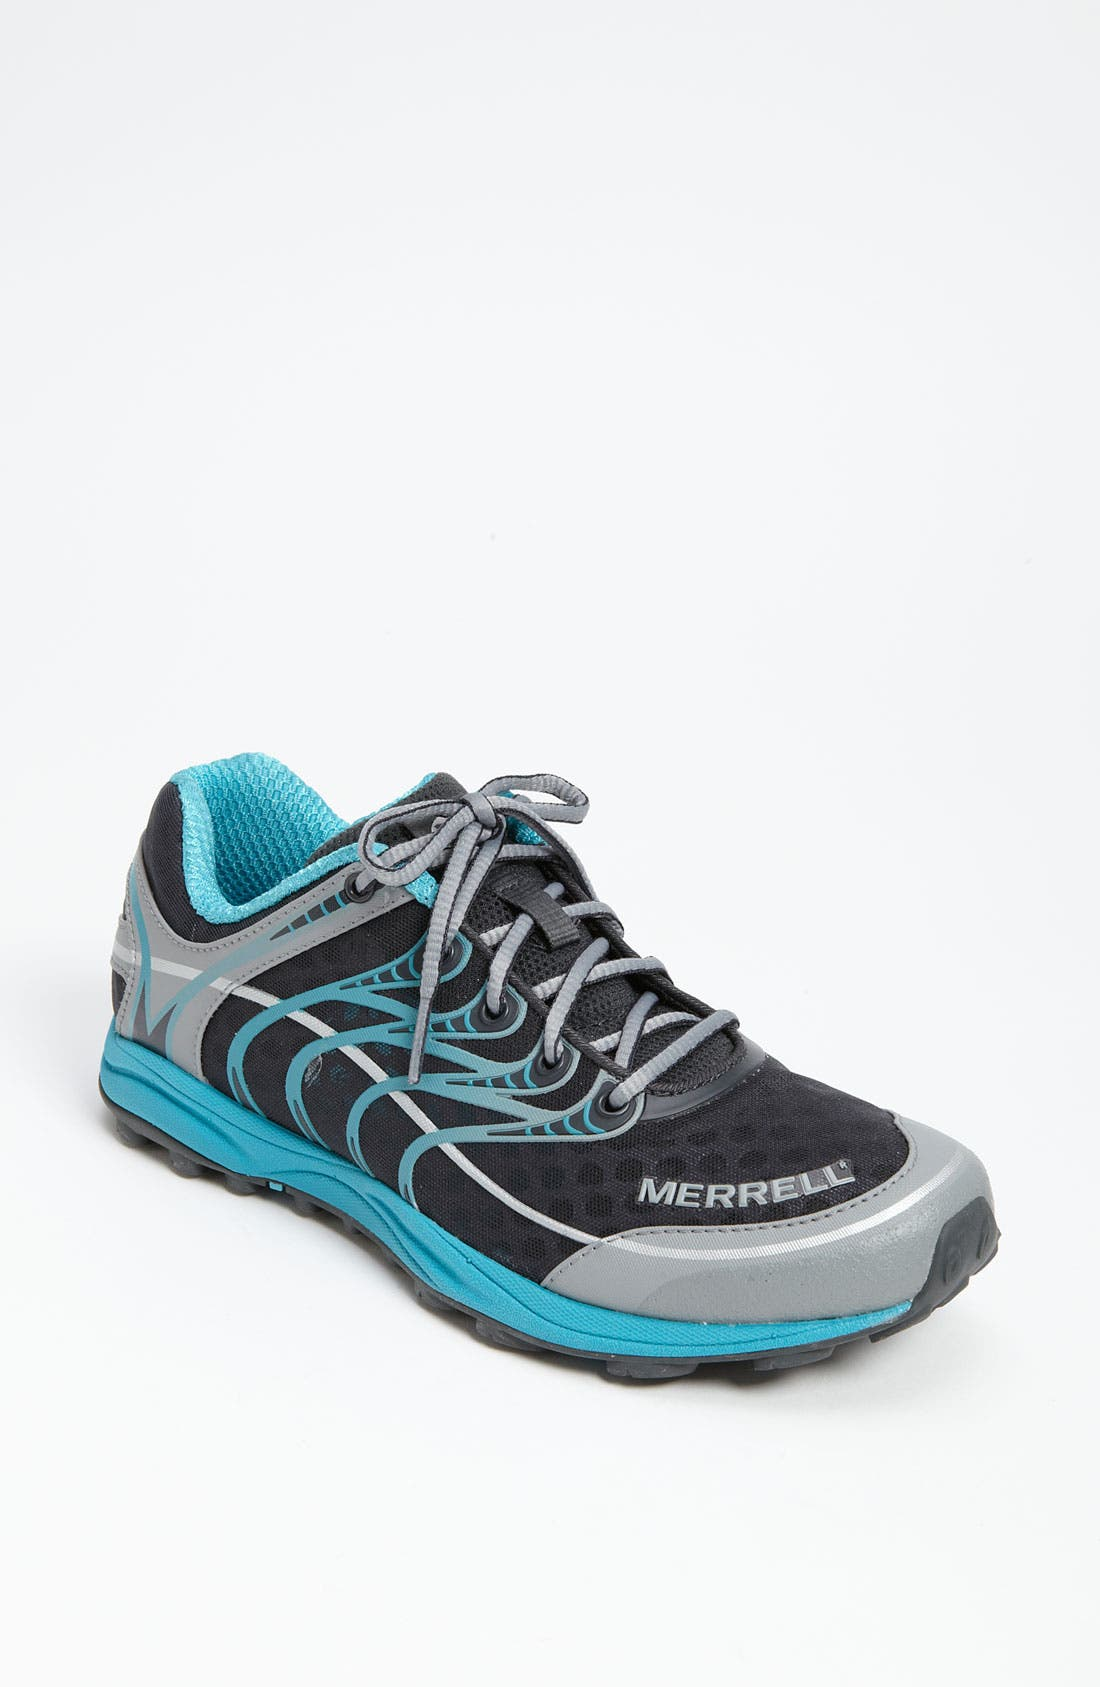 Alternate Image 1 Selected - Merrell 'Mix Master Road Glide' Running Shoe (Women)